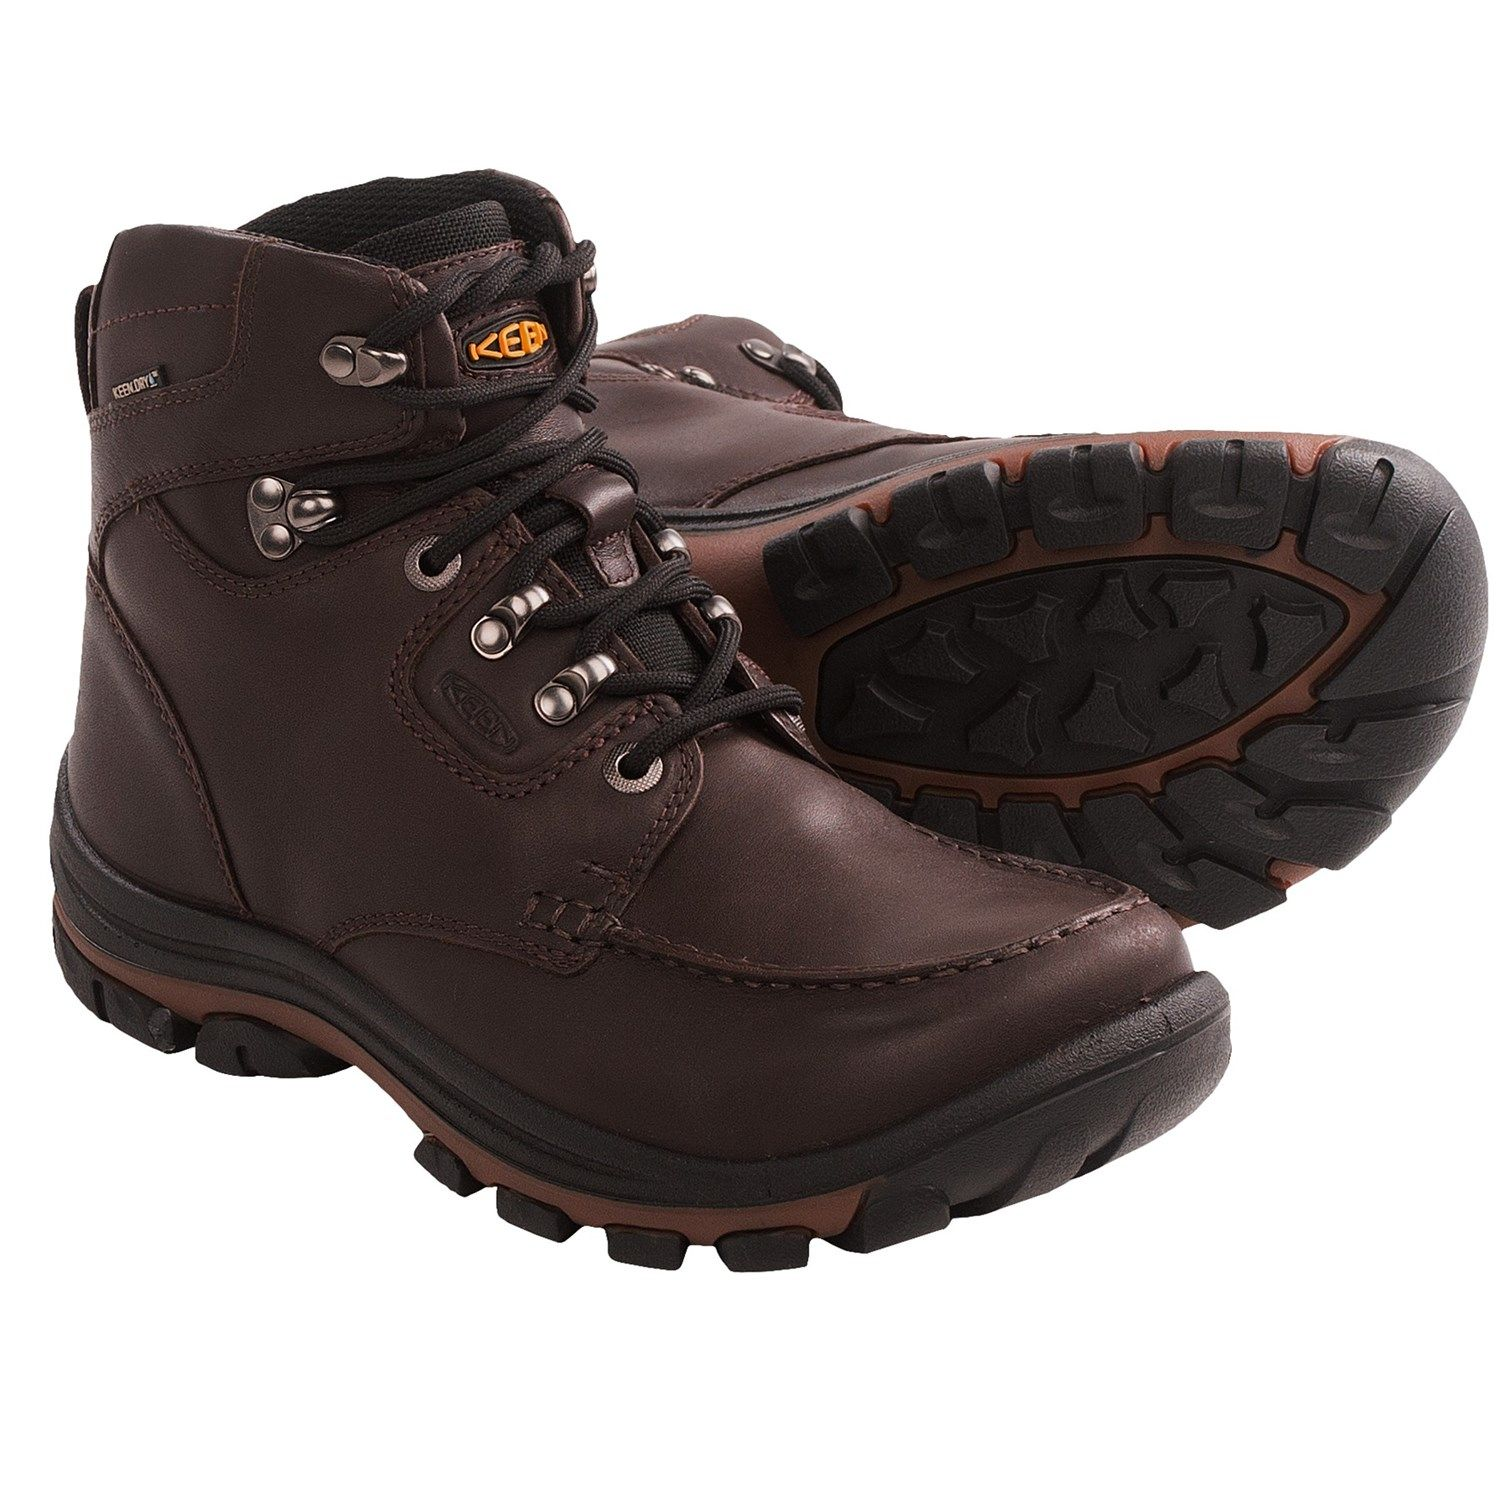 Keen NoPo Boots Waterproof, Leather (For Men) Boots